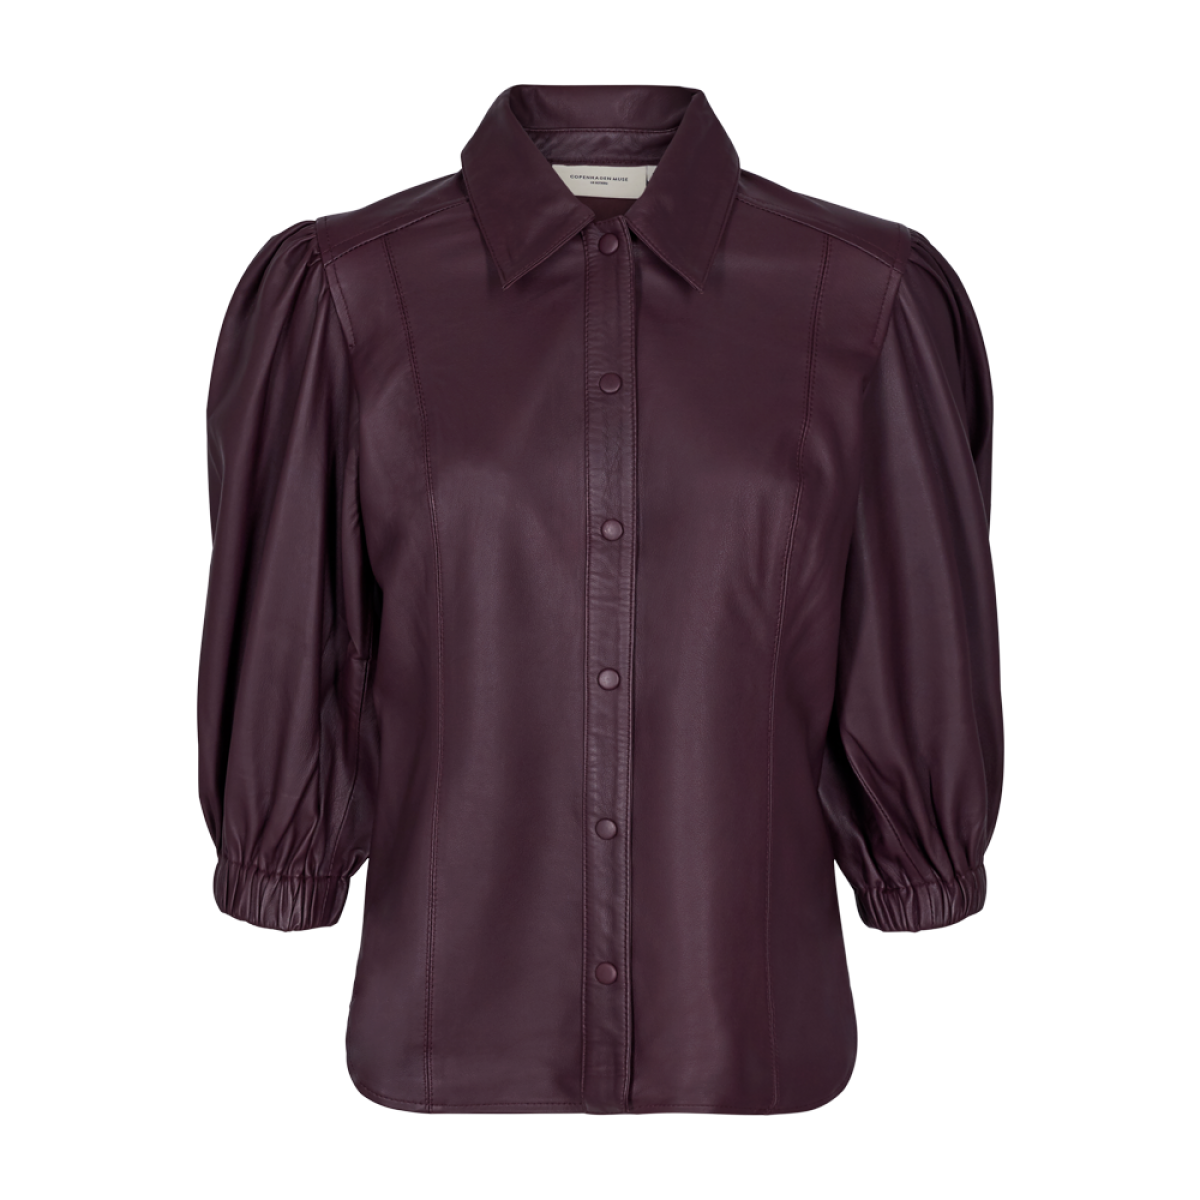 Cph Muse 123743 Kayser Shirt Fudge-31